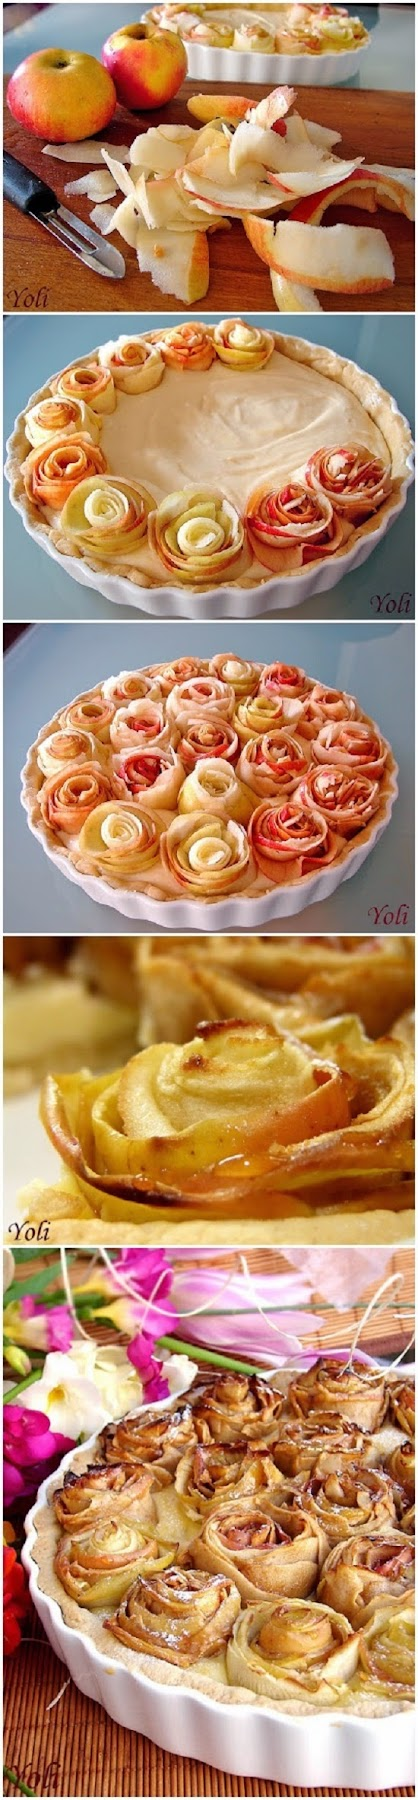 How To Make Apple pie with roses